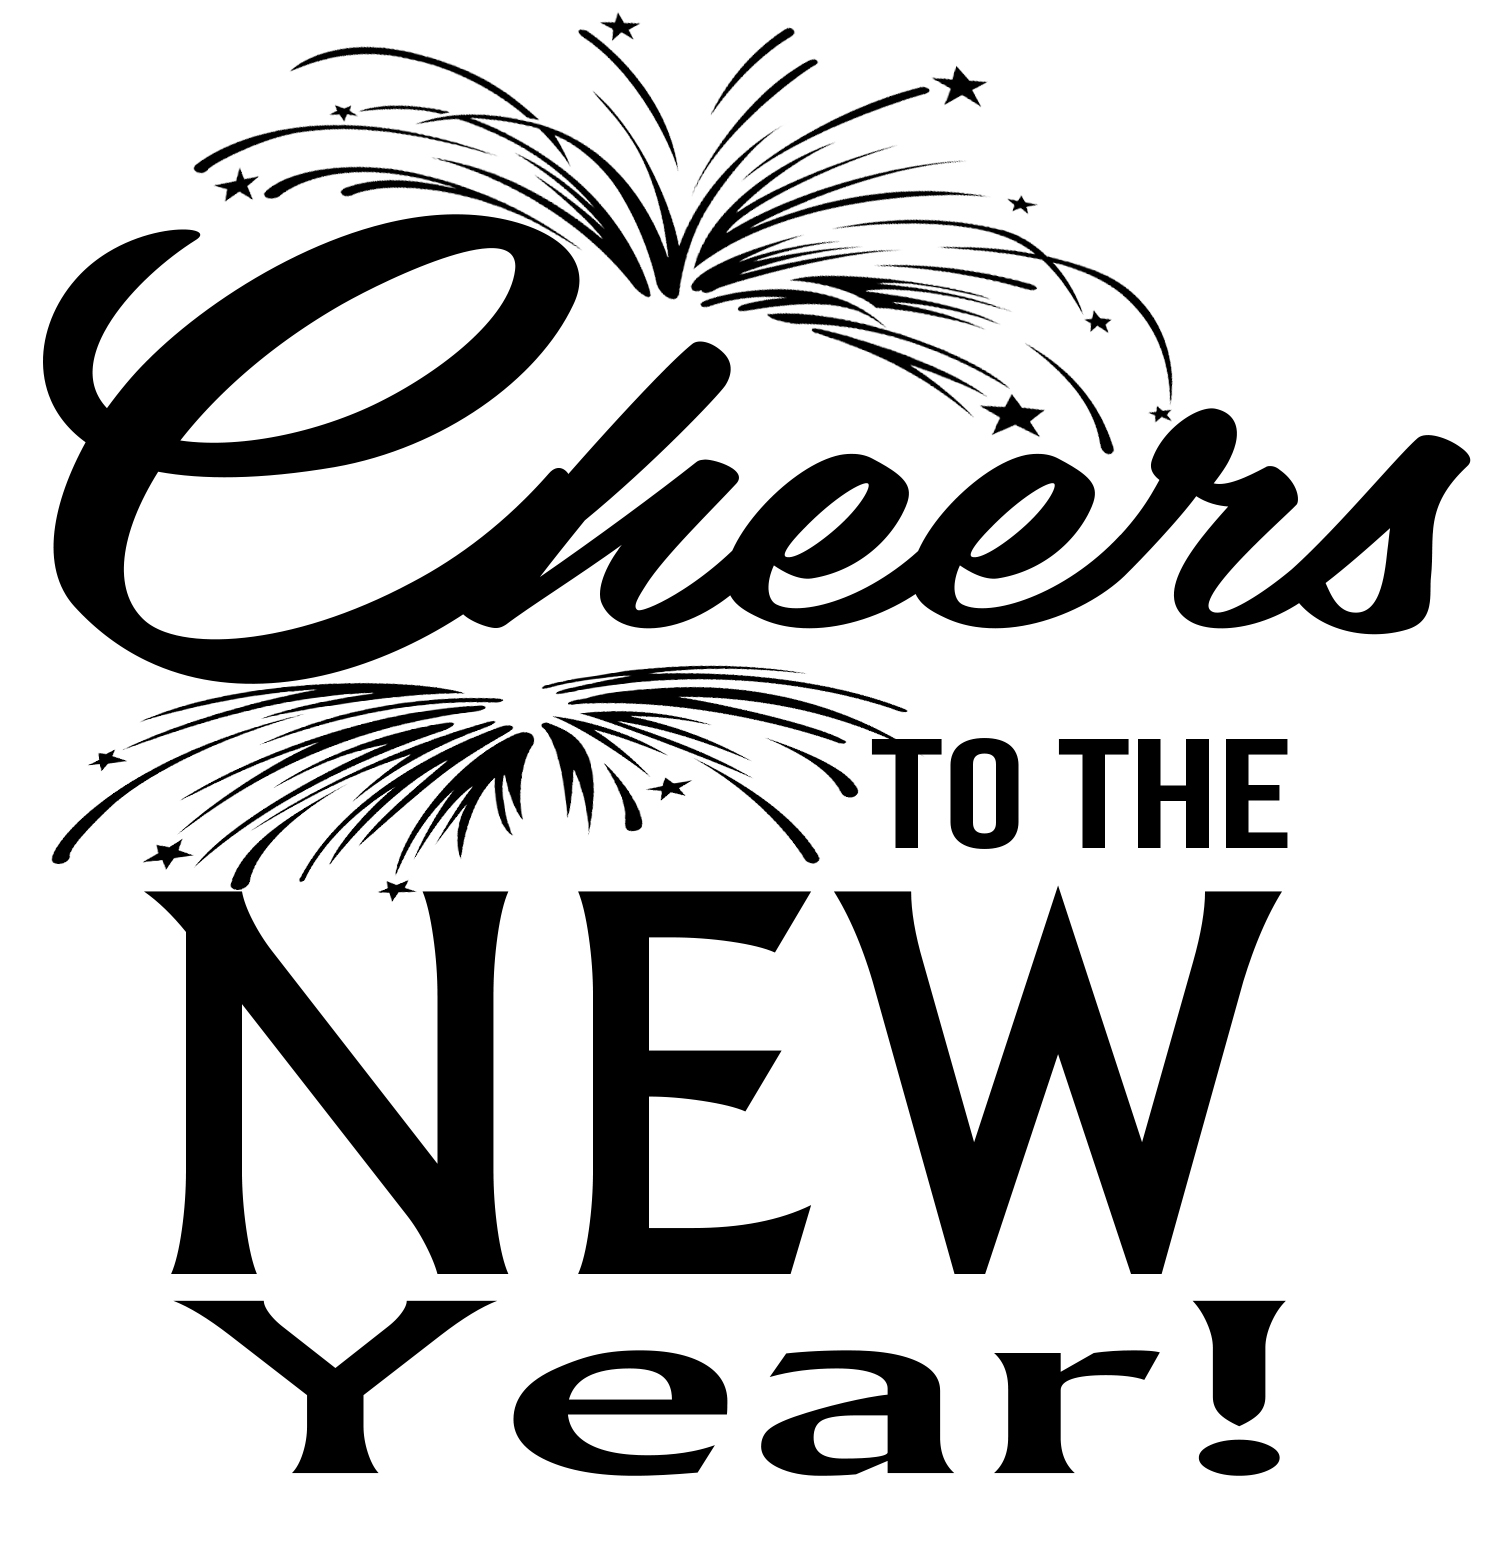 Free Cheers to the New Year SVG File